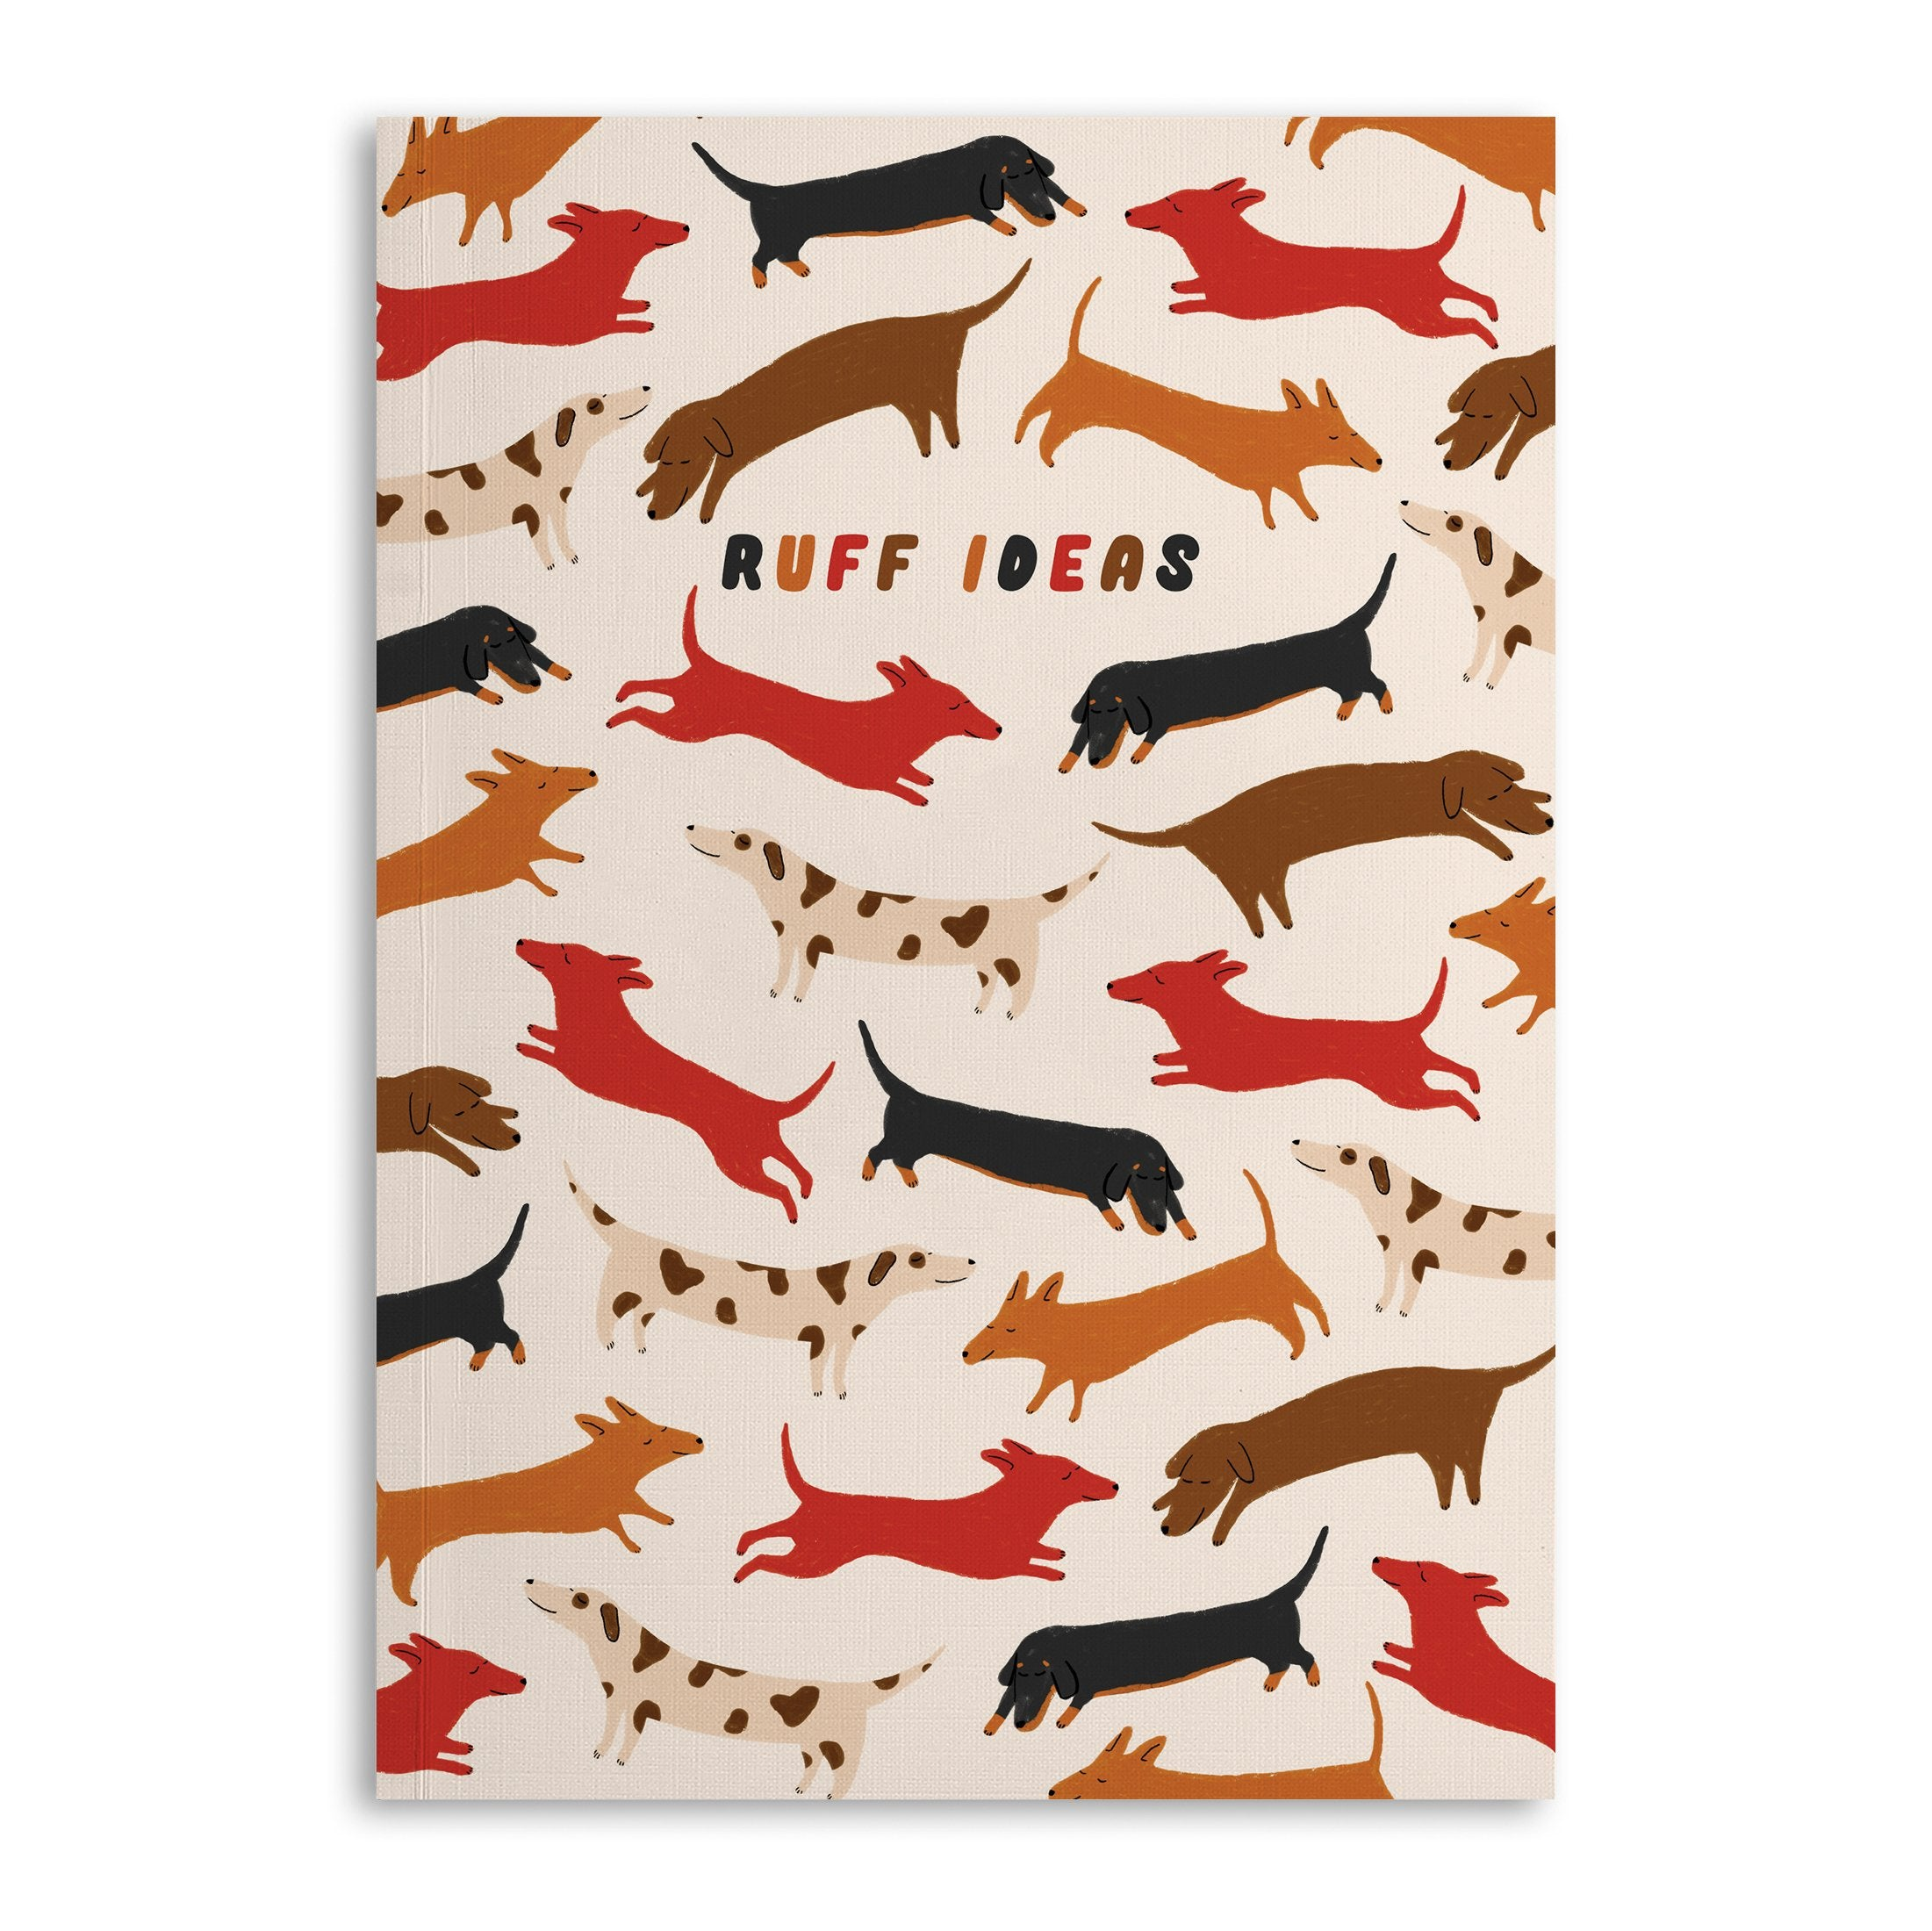 Ruff Ideas A5 Lined Notebook - US